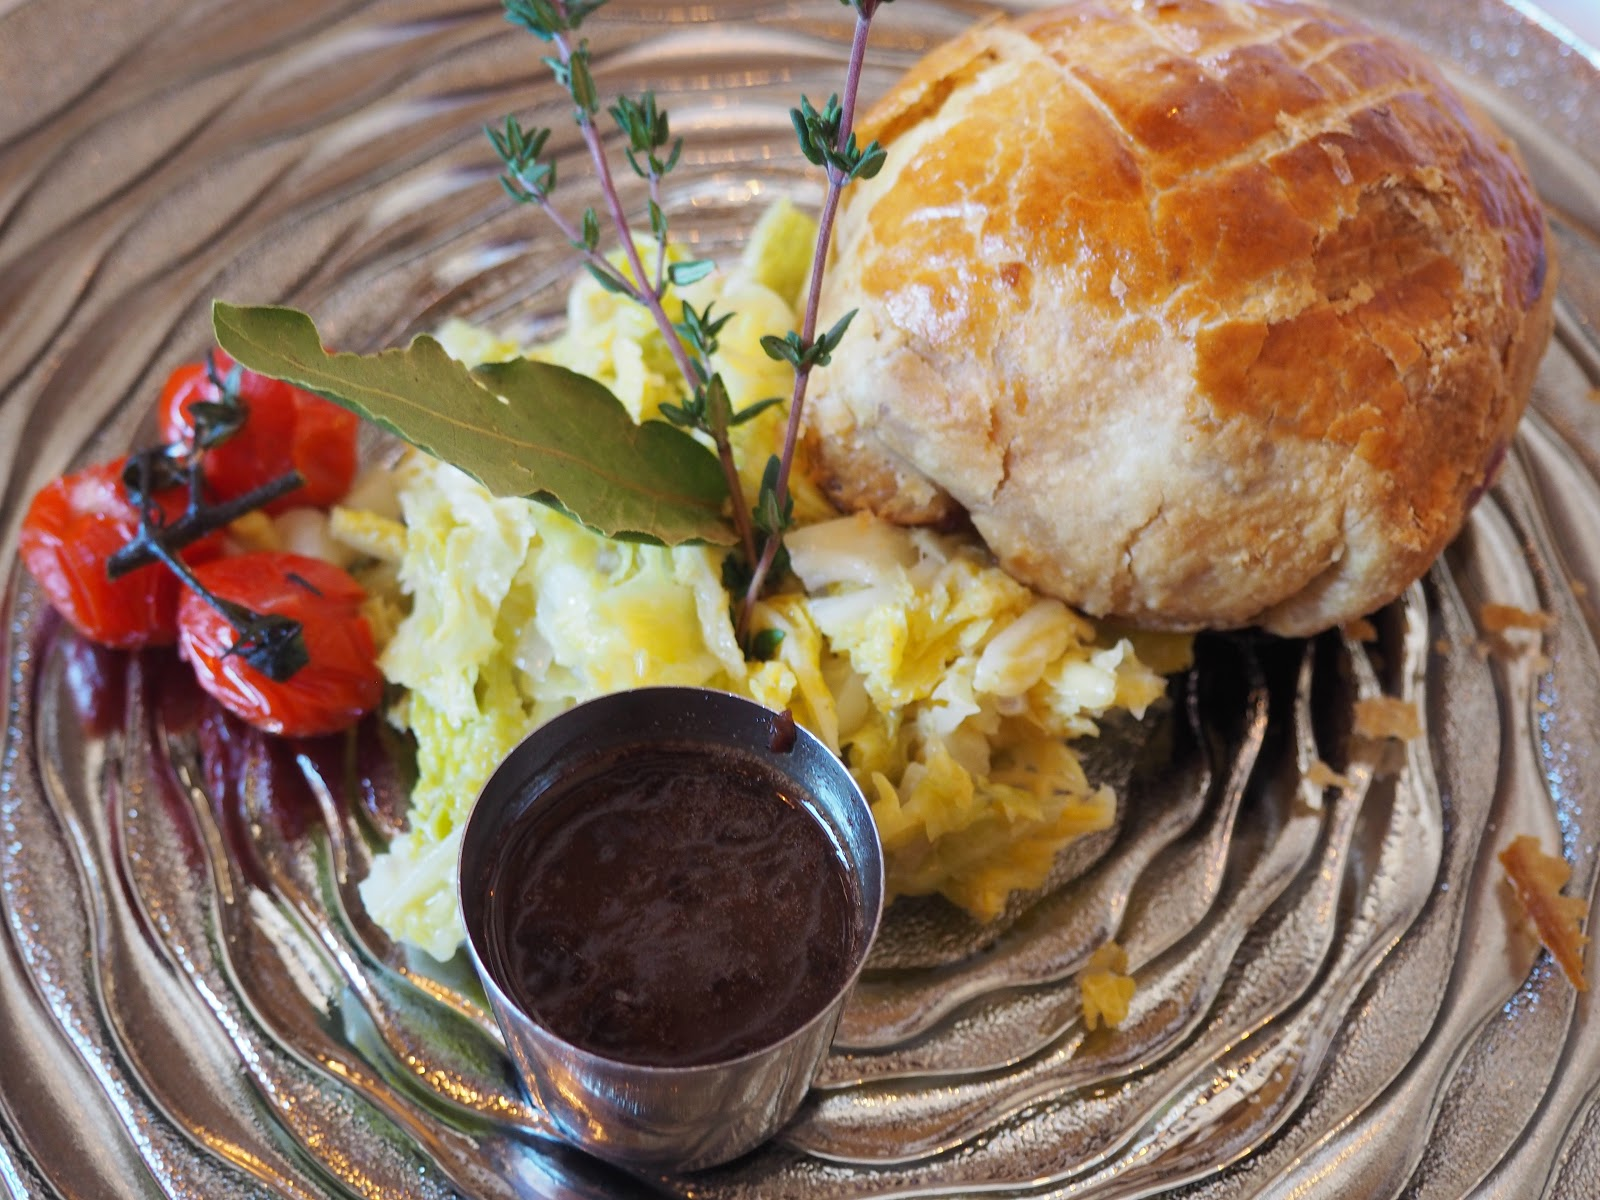 Quail pie at La Fruitiere, Val d'Isere, France